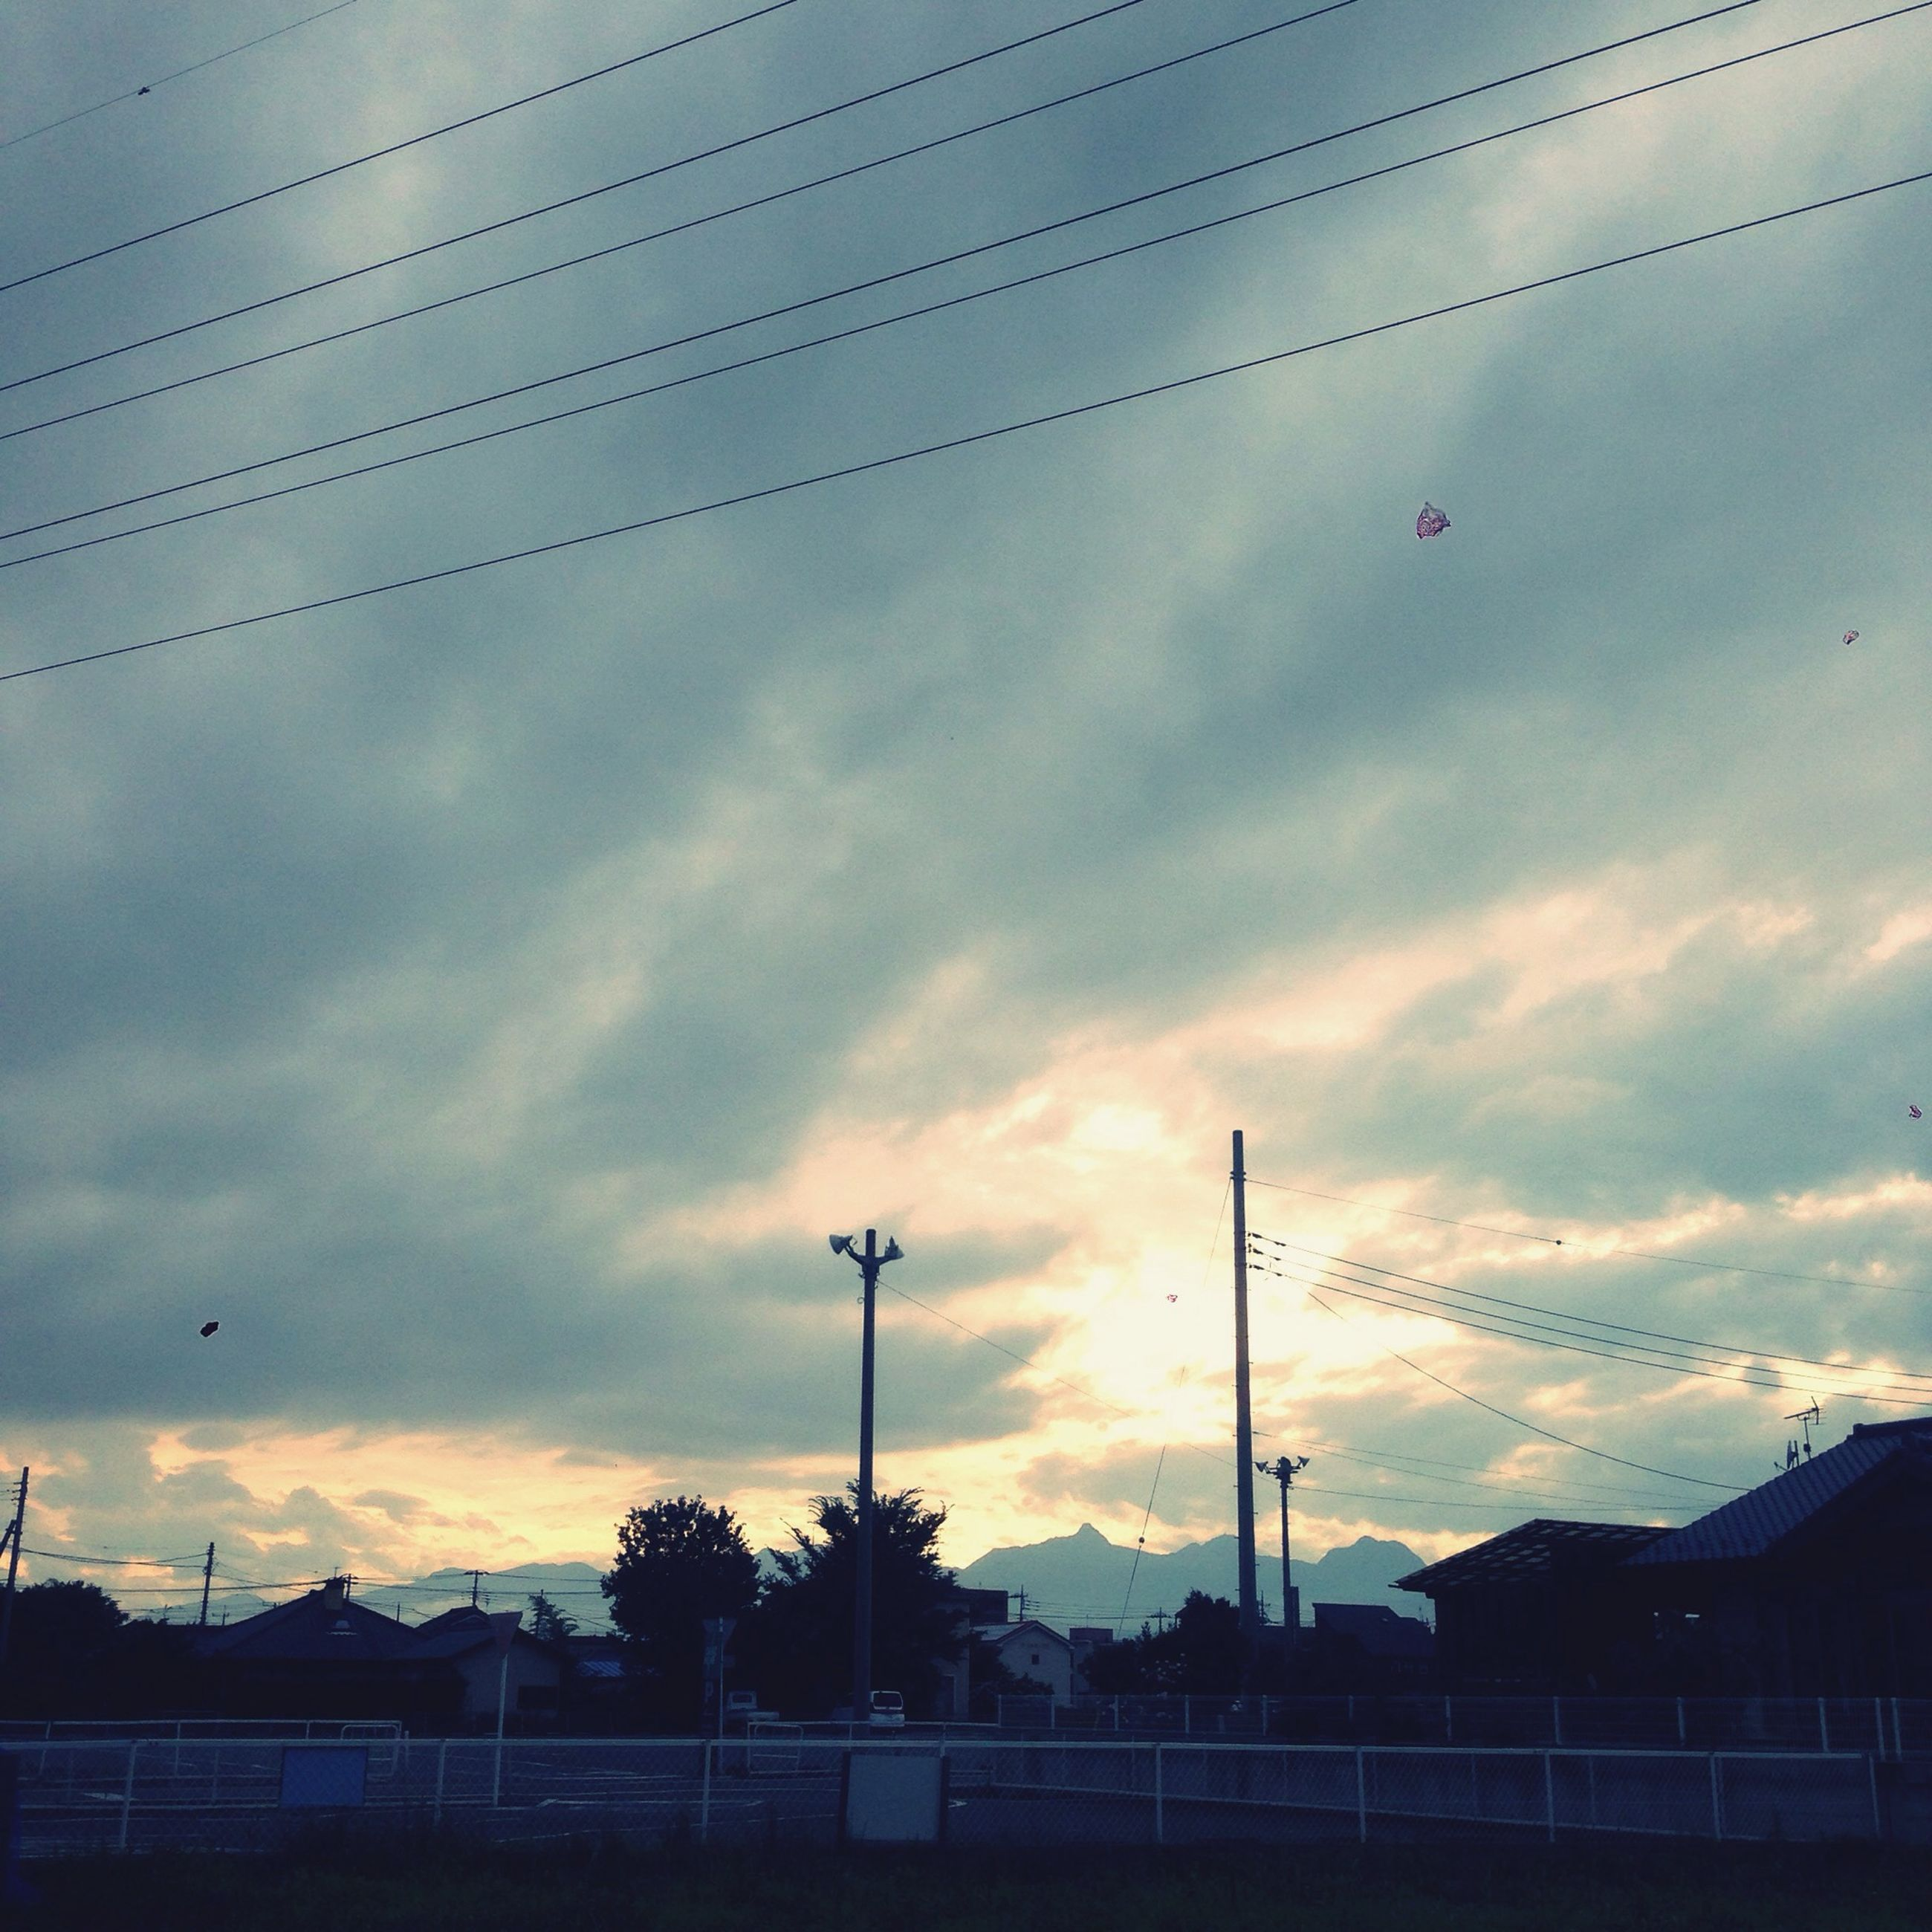 sky, cloud - sky, sunset, silhouette, street light, low angle view, cloudy, power line, cloud, bird, electricity pylon, connection, built structure, dusk, scenics, nature, beauty in nature, electricity, outdoors, architecture